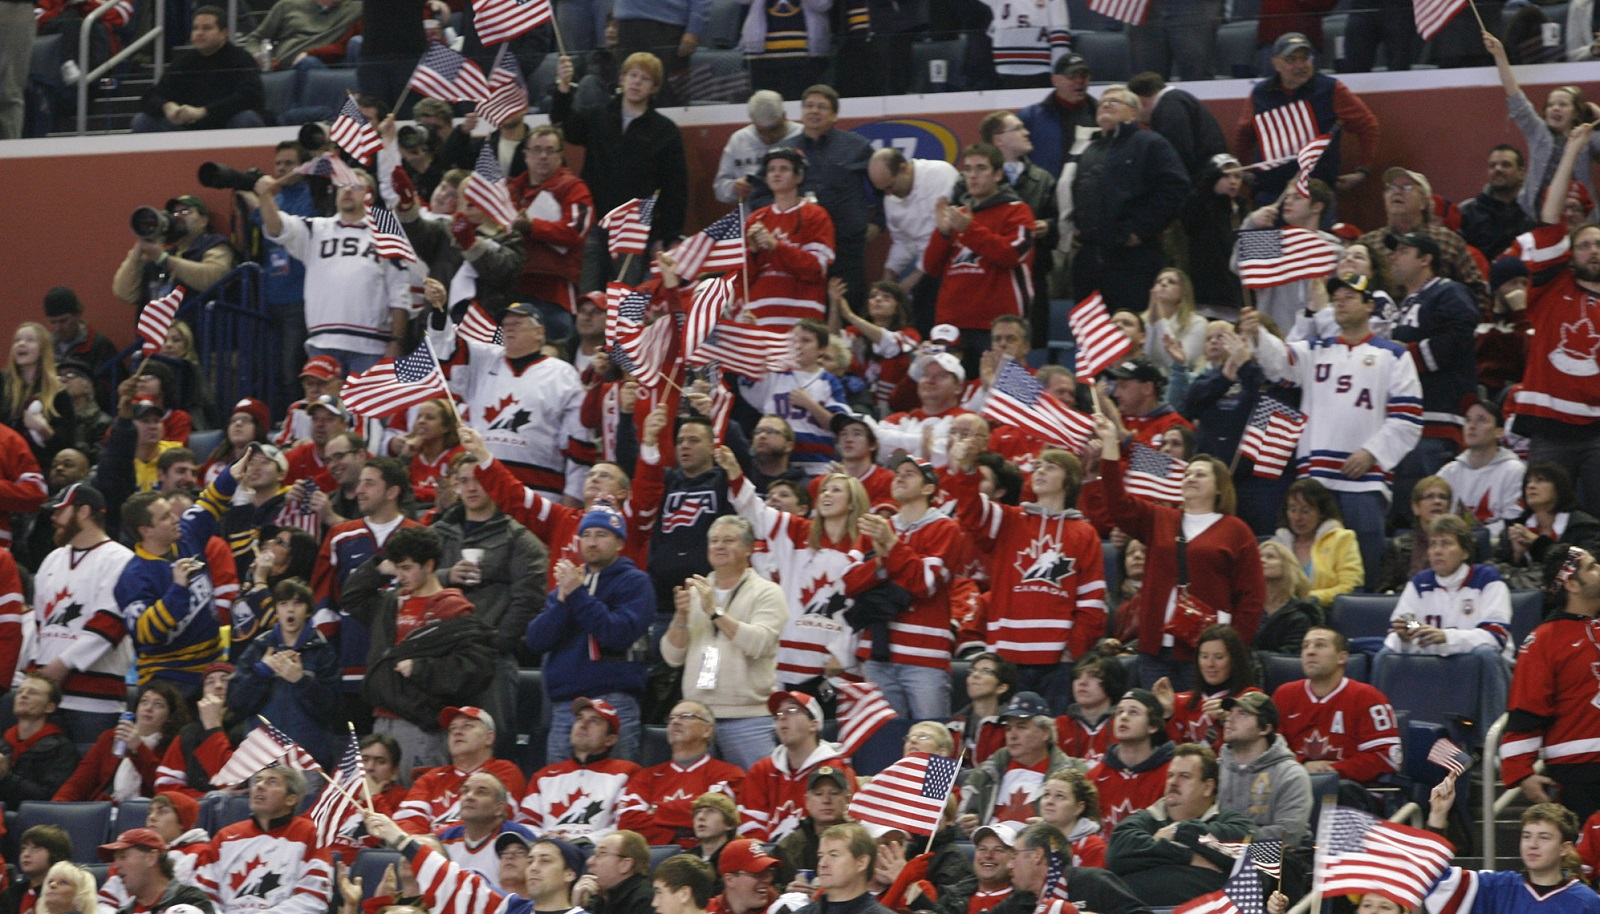 Hockey fans in Buffalo celebrate a third-period goal for the United States against Sweden during the 2011 World Junior Hockey Championships hosted at the First Niagara Center. (John Hickey/Buffalo News file photo)